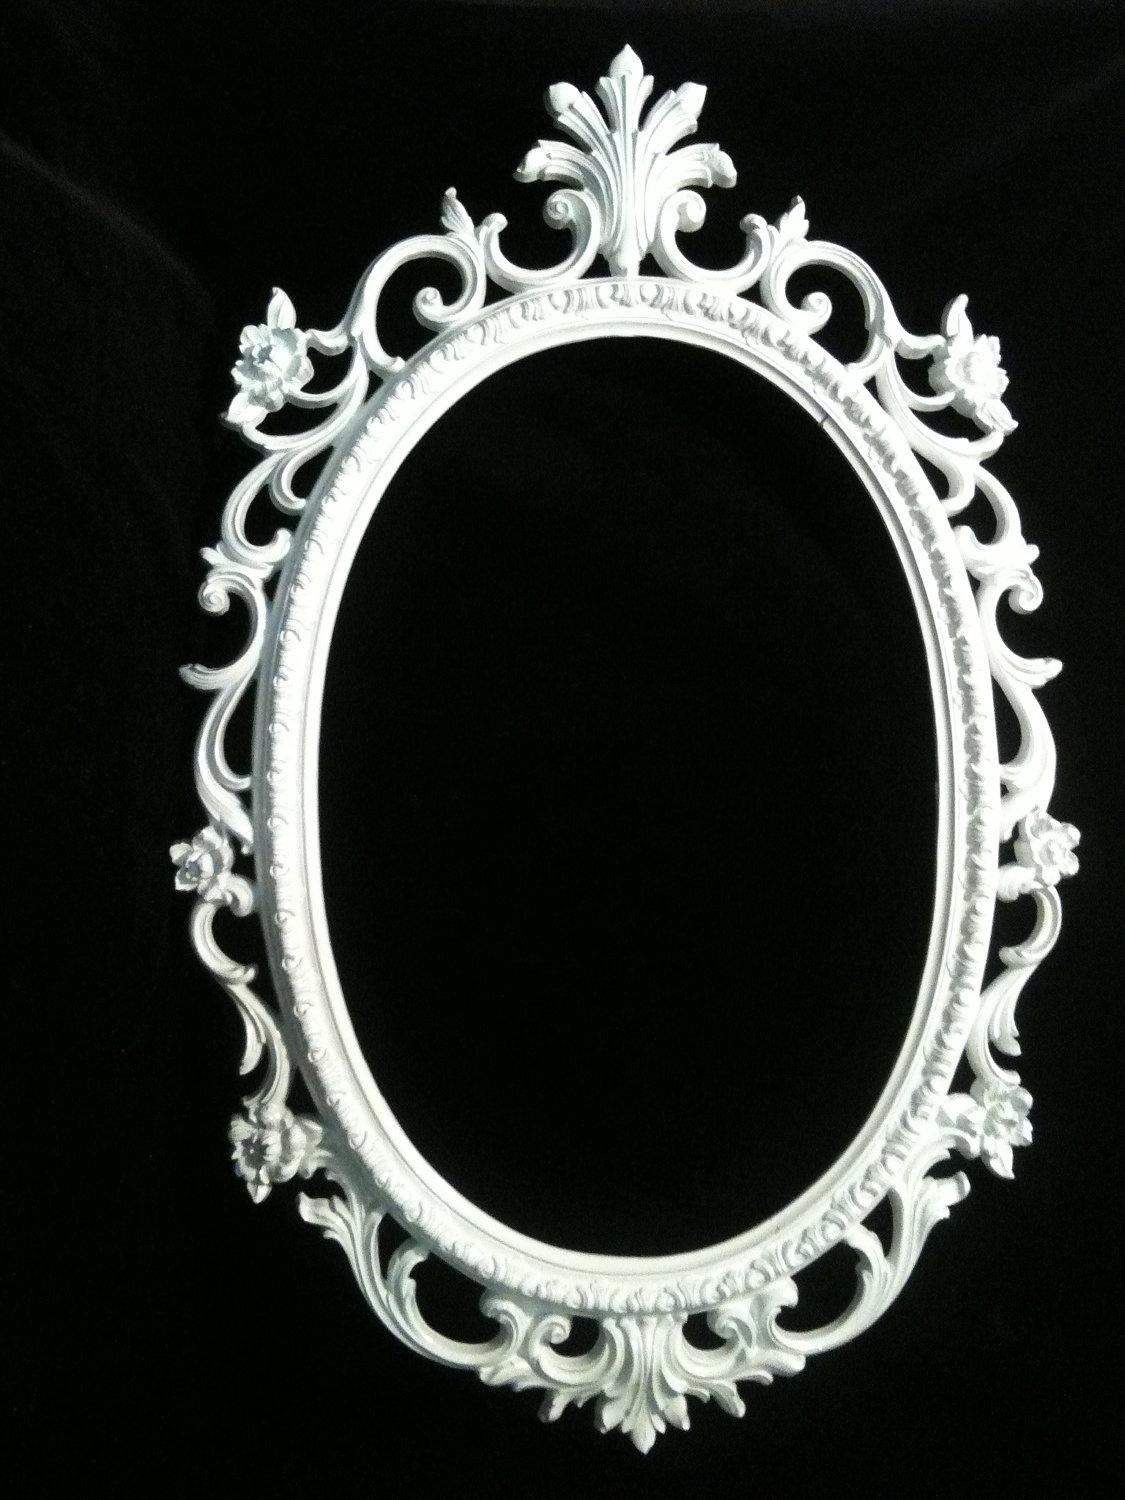 Gloss White Oval Picture Frame Mirror Shab Chic Baroque Gothic Throughout Large White Rococo Mirror (Image 5 of 15)